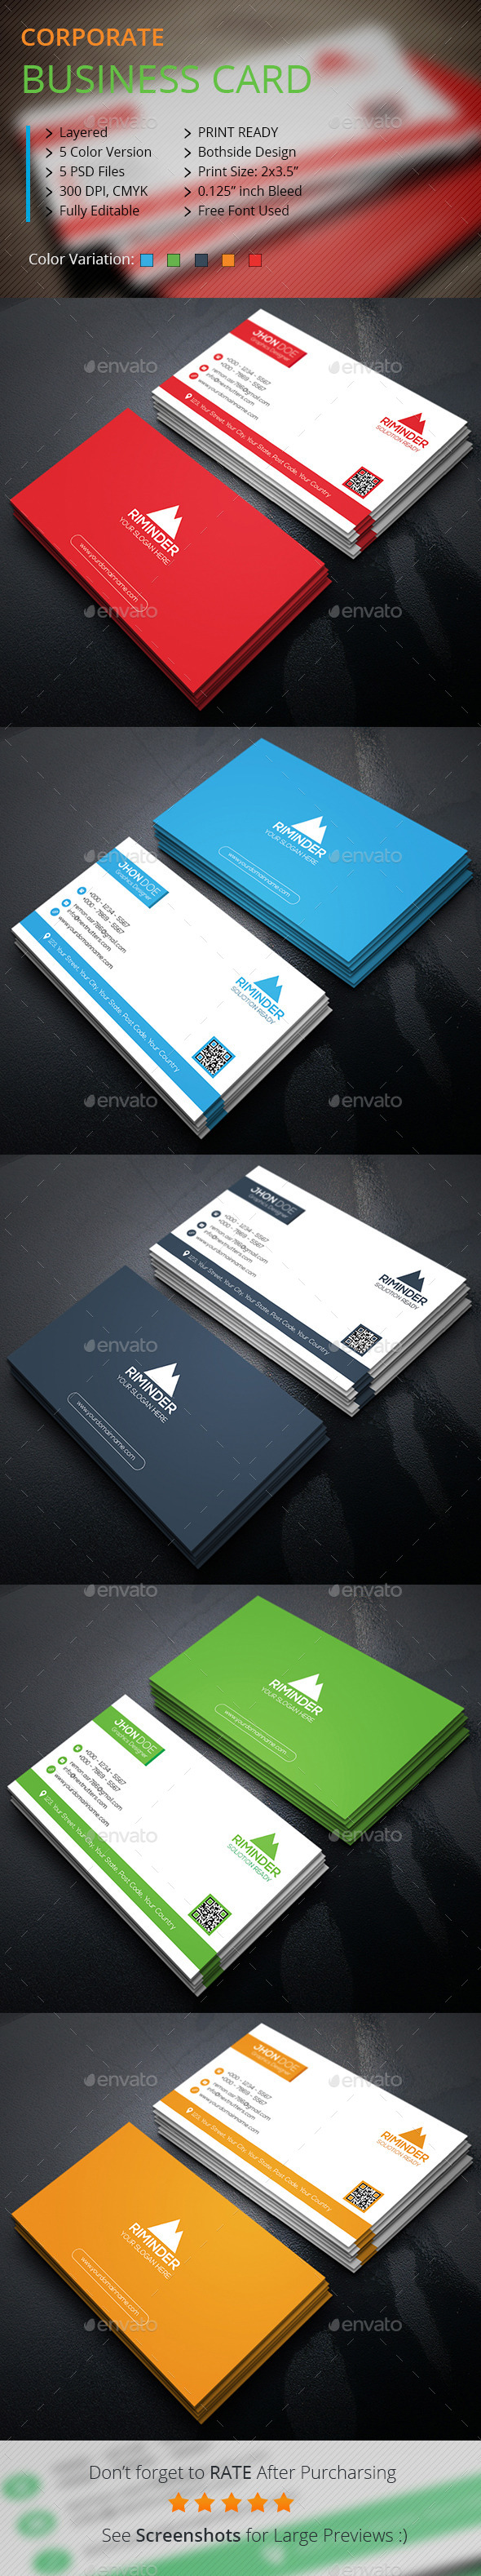 Premium Business Card - Corporate Business Cards